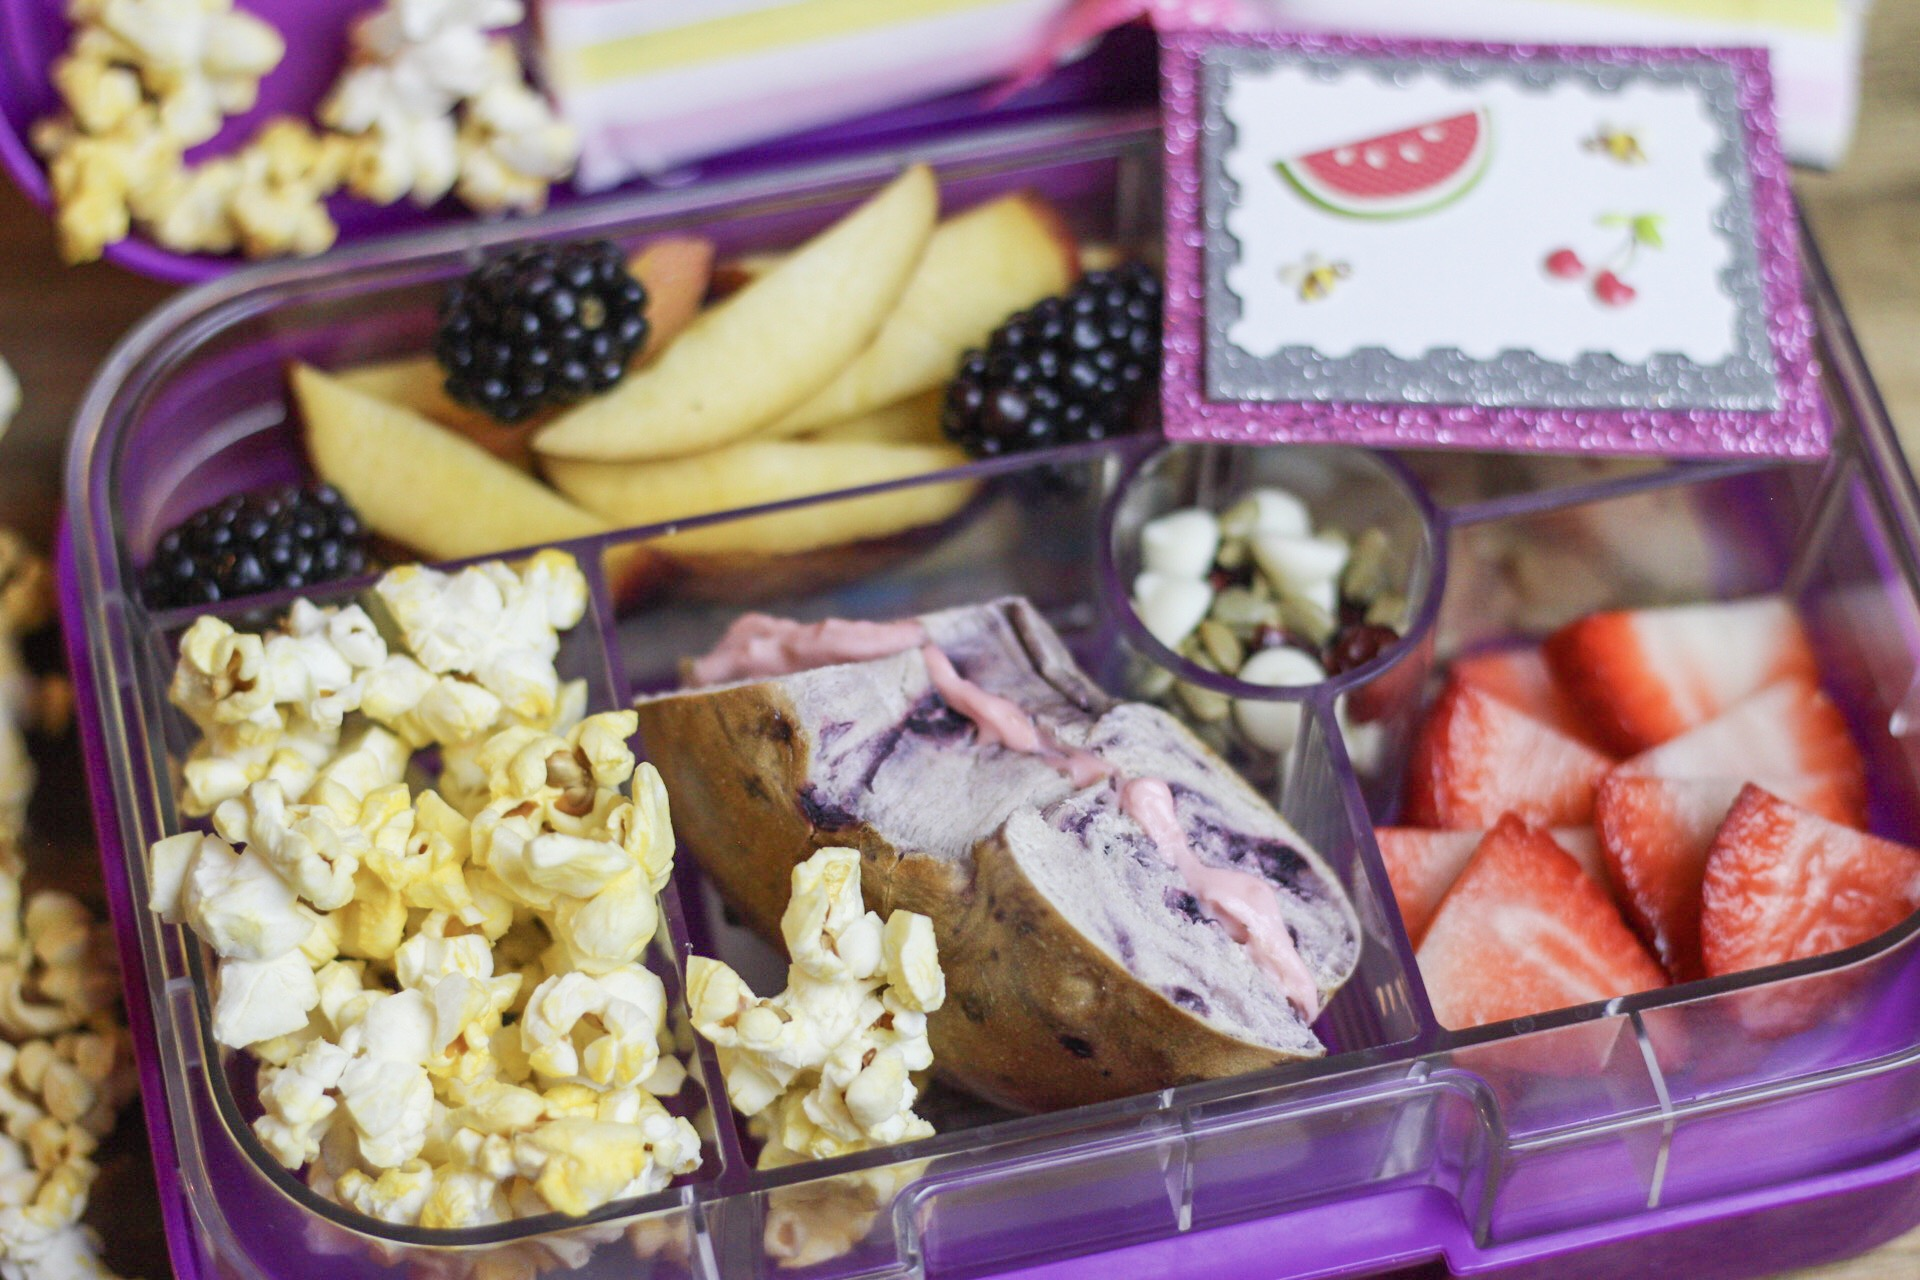 Bagel for lunch? We think yes! - Blueberry bagel with strawberry cream cheese, popcorn, strawberries, trail mix (yogurt covered raisins,sunflower seeds,chocolate chips), nectarines, and blackberries!